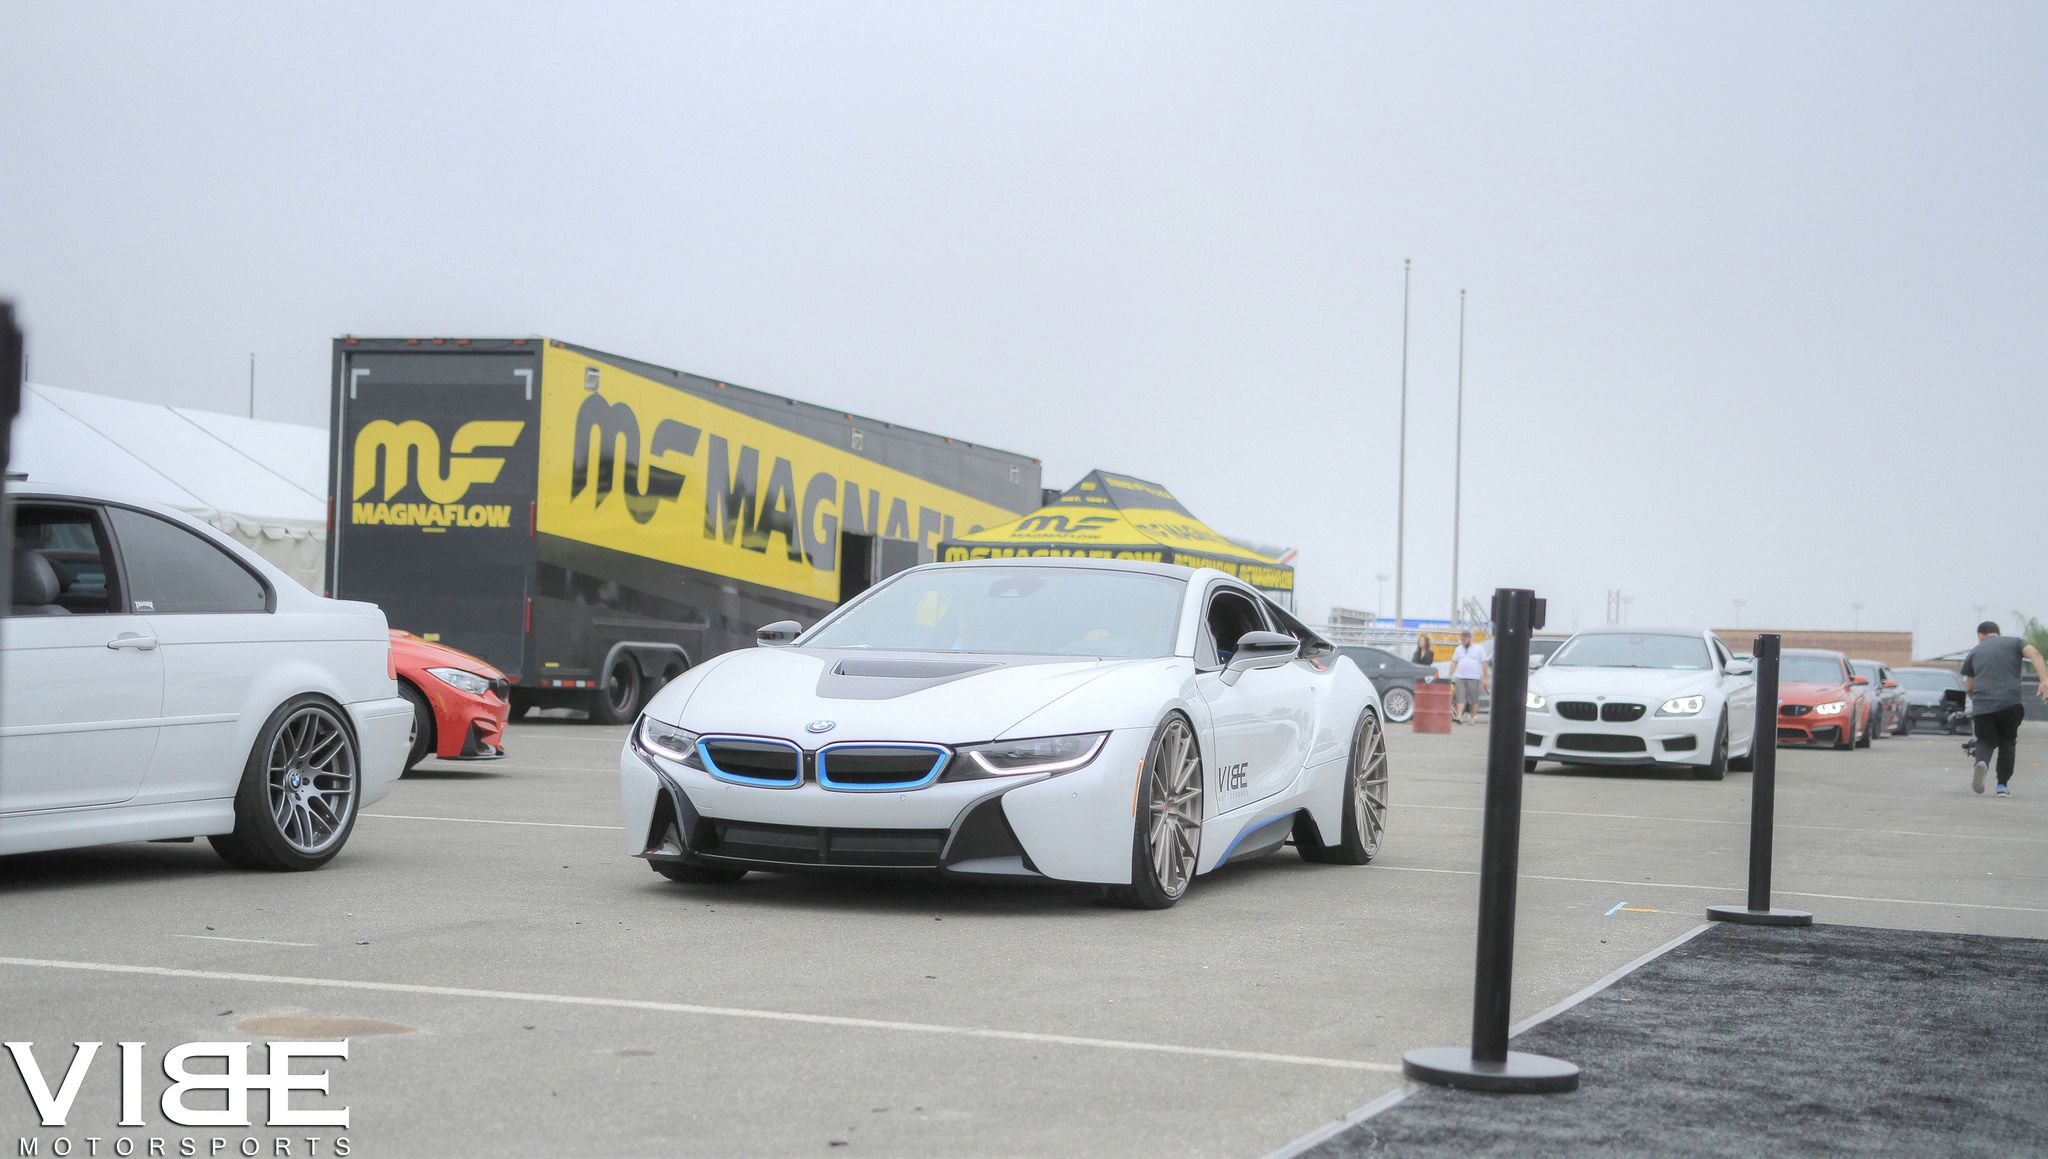 #BMW #i8 #M3 #M4 #F10 #F13 #E92 #Sedan #Coupe #eDrive #Electric #VibeMotorsports #Burn #Blue #Sea #BimmerFest2k16 #Girls #Boobs #Green #Provocative #Sexy #Hot #Badass #Live #Life #Love #Follow #Your #Heart #BMWLife